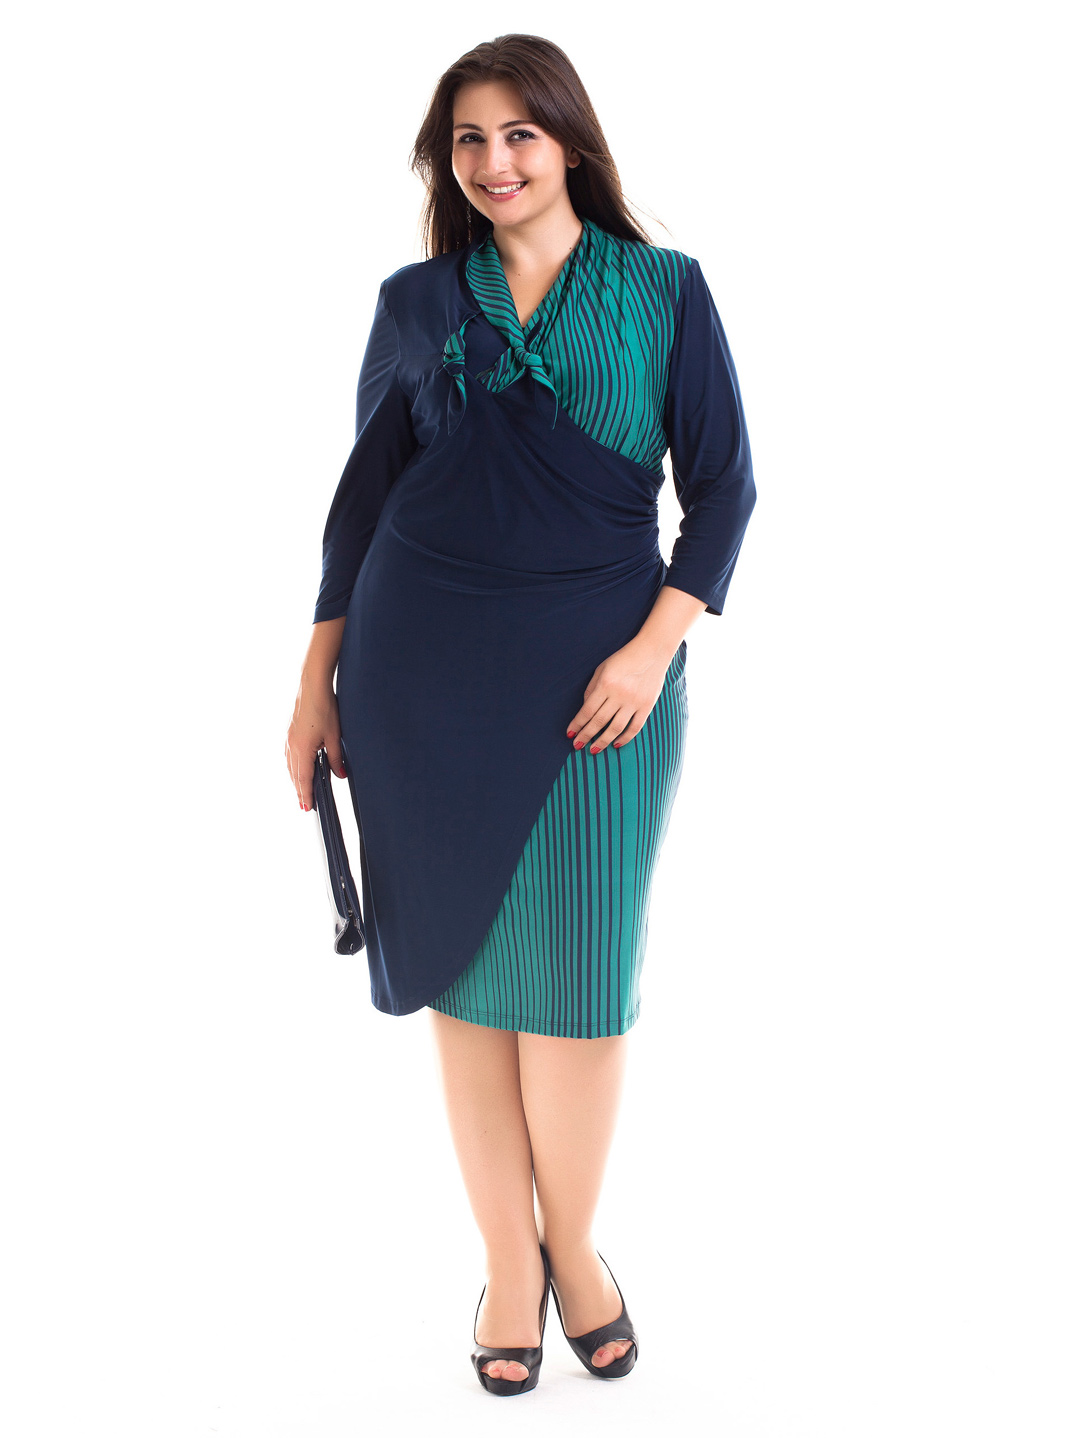 Cheap Trendy Plus Size Clothing Uk